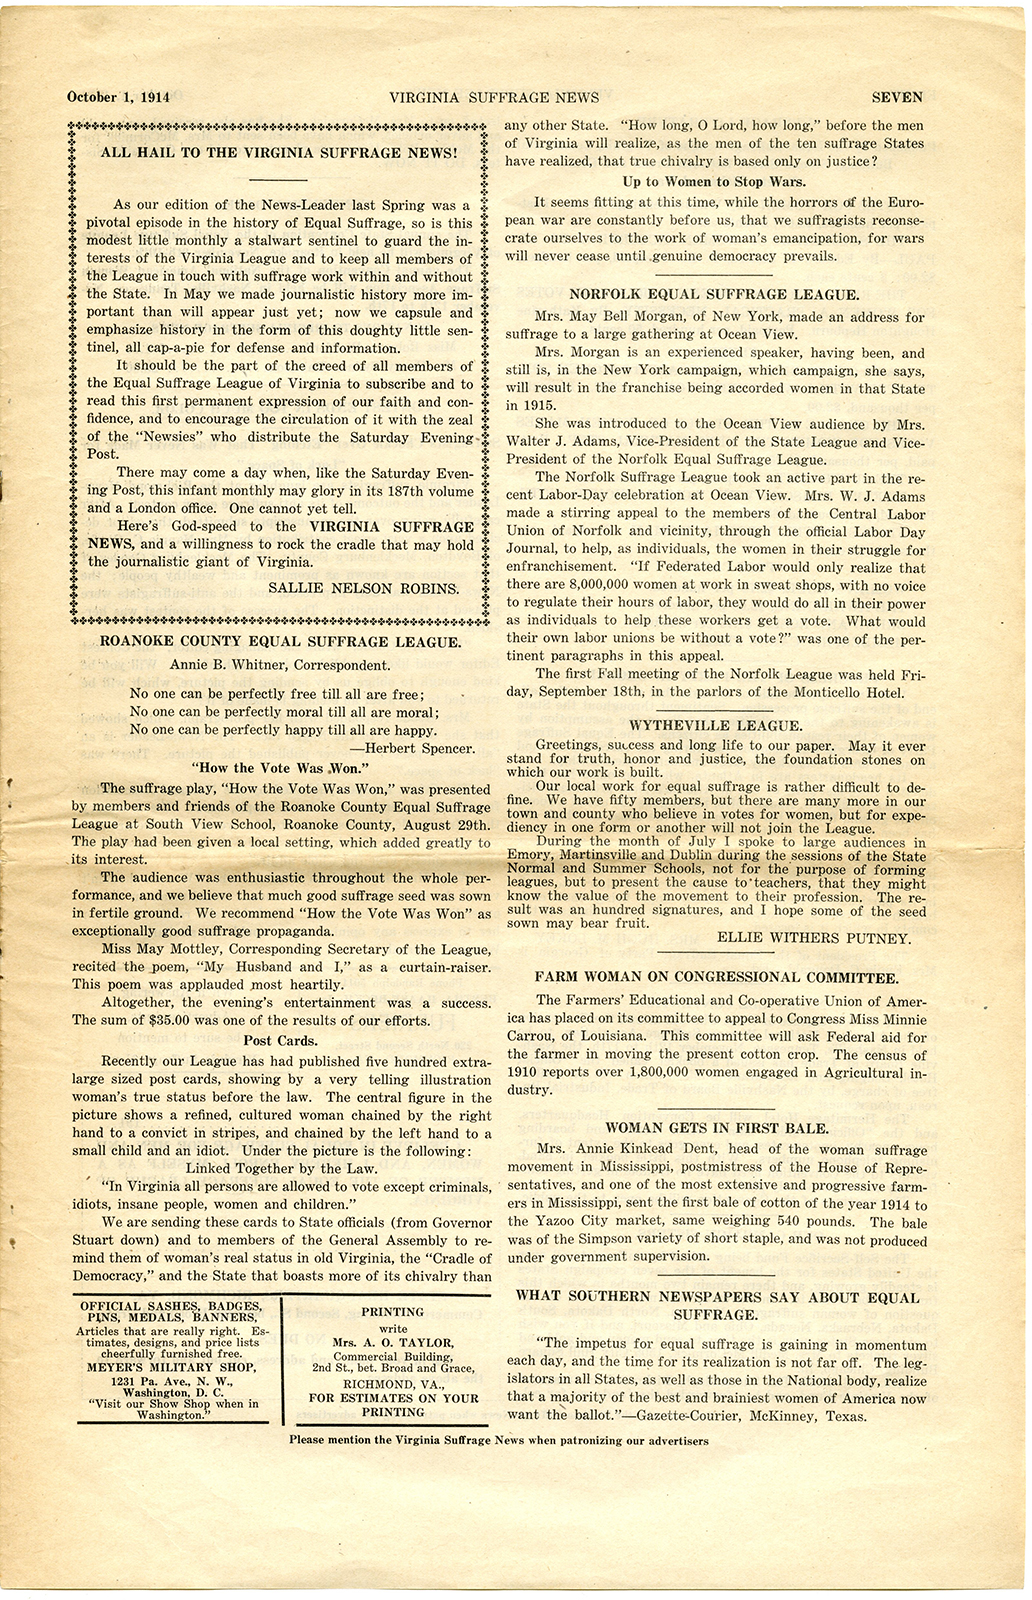 VCU_M9 B56 Virginia Suffrage News Oct 1 1914 p7 rsz.jpg